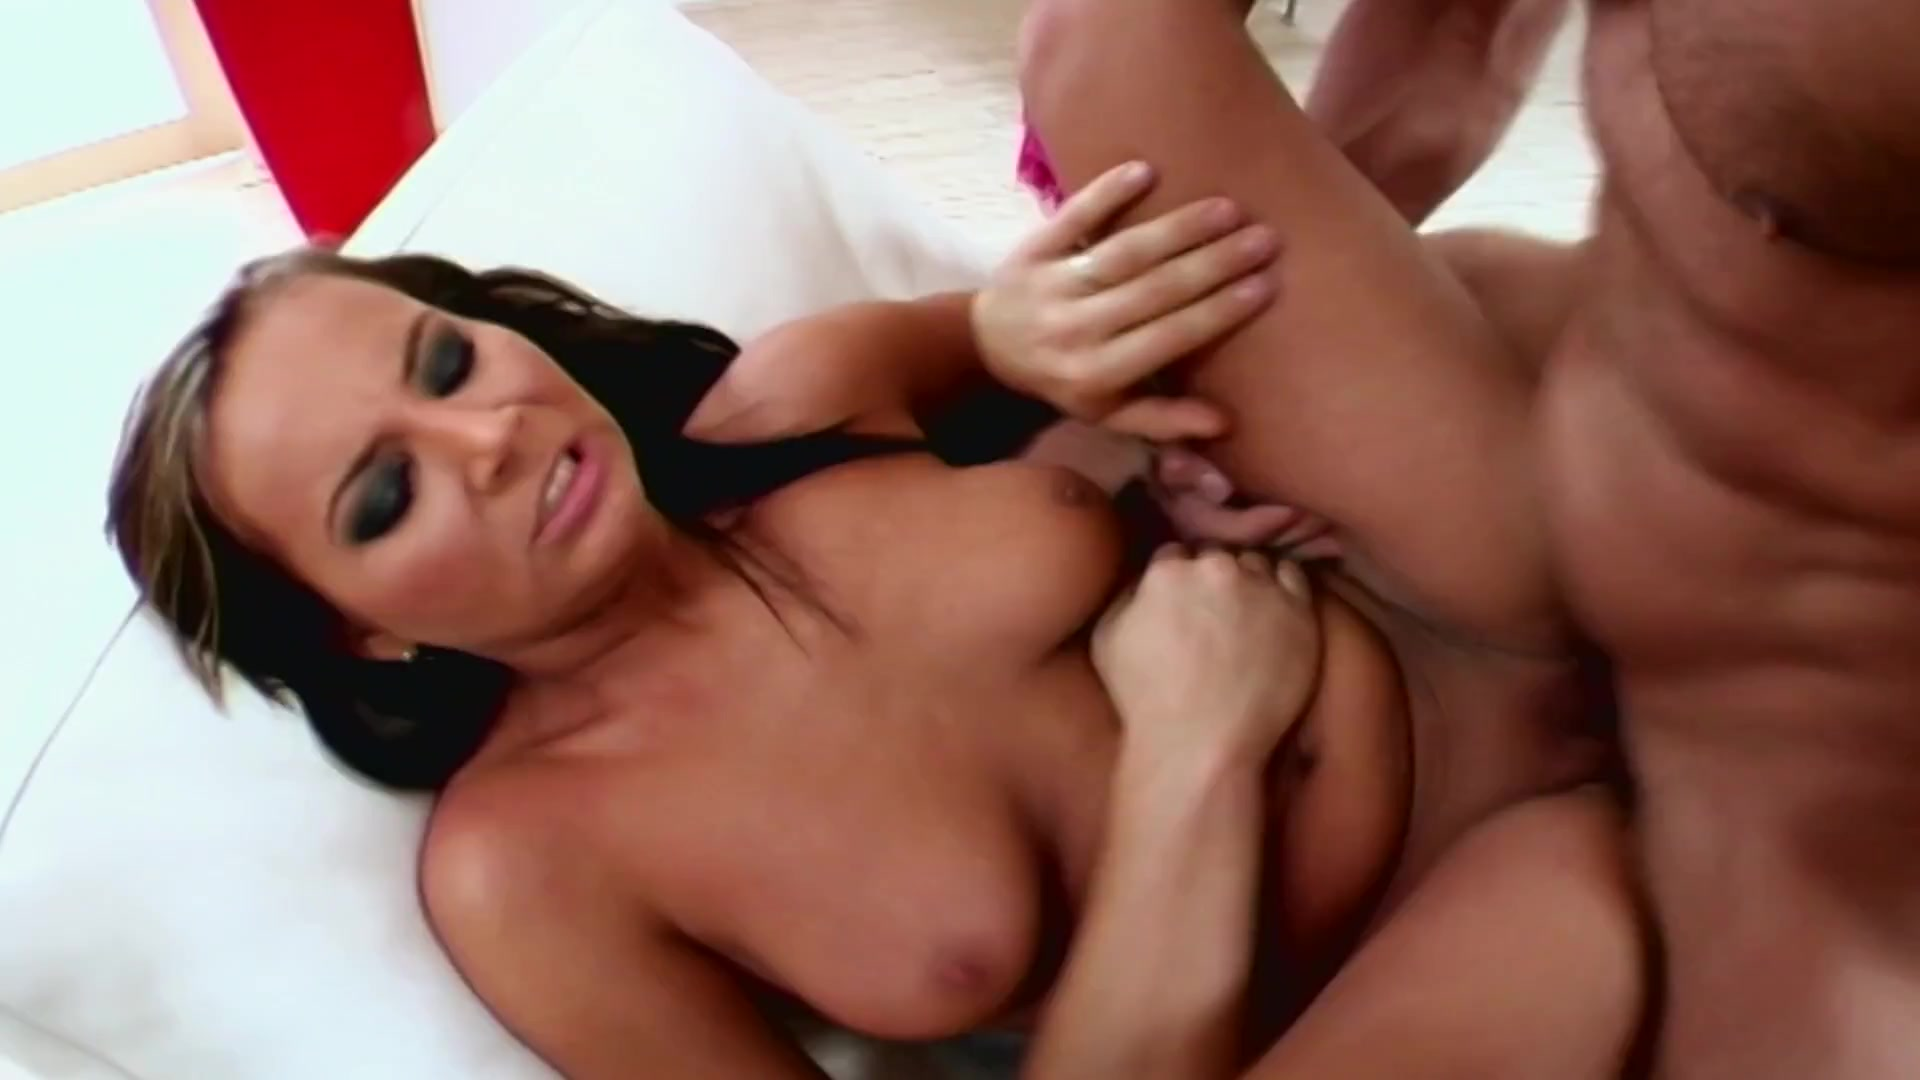 ONLY CREAMPIE